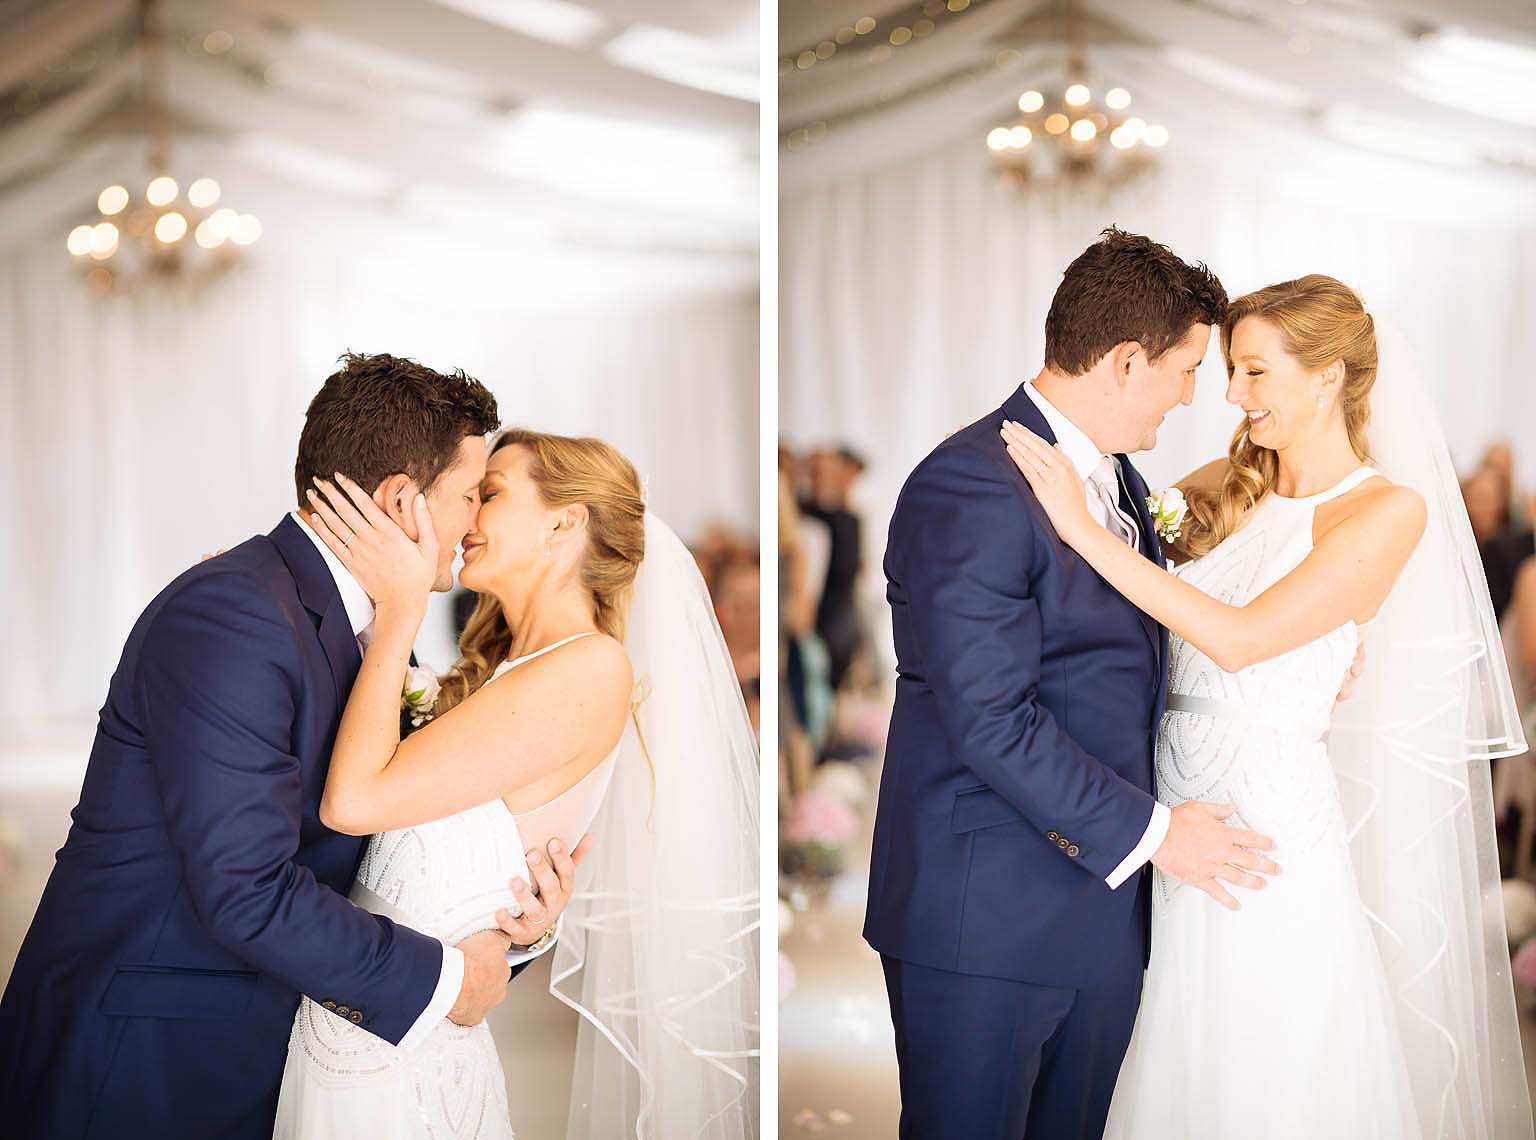 firstkiss-married-axnoller-bridport-weddings-13